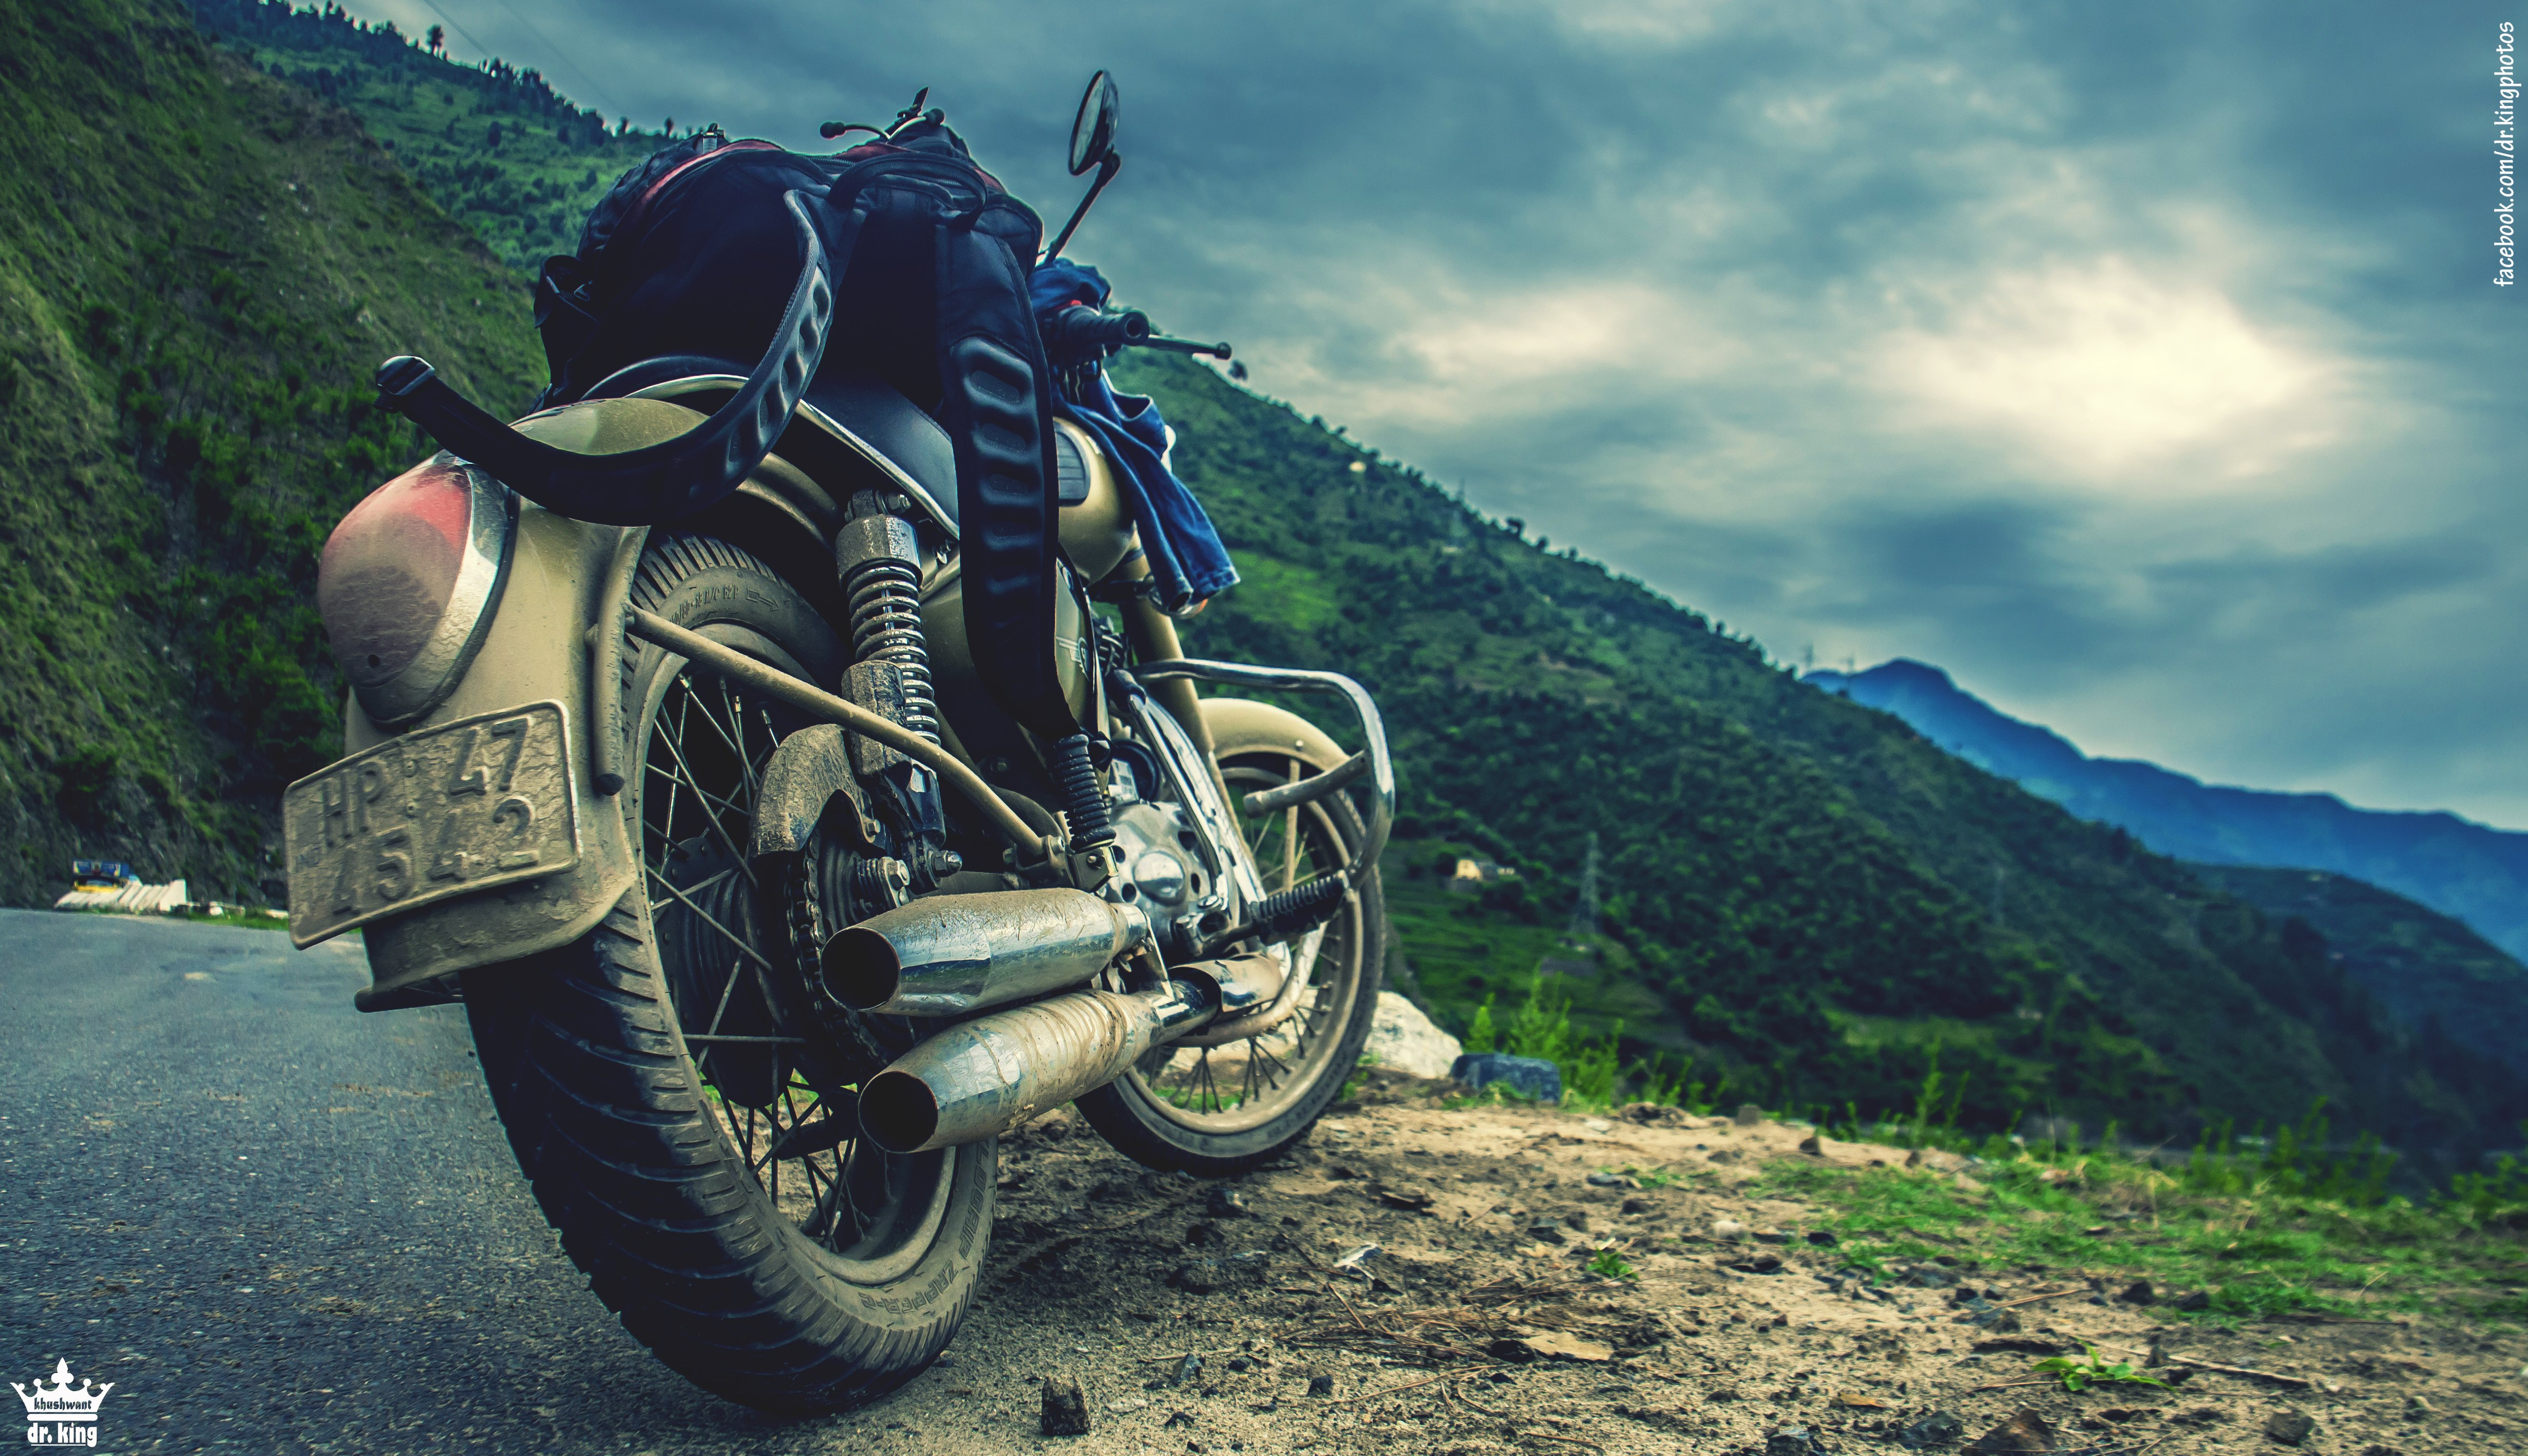 Motorcycle Wallpaper Cool HDQ Live Motorcycle Wallpapers 4917x2832